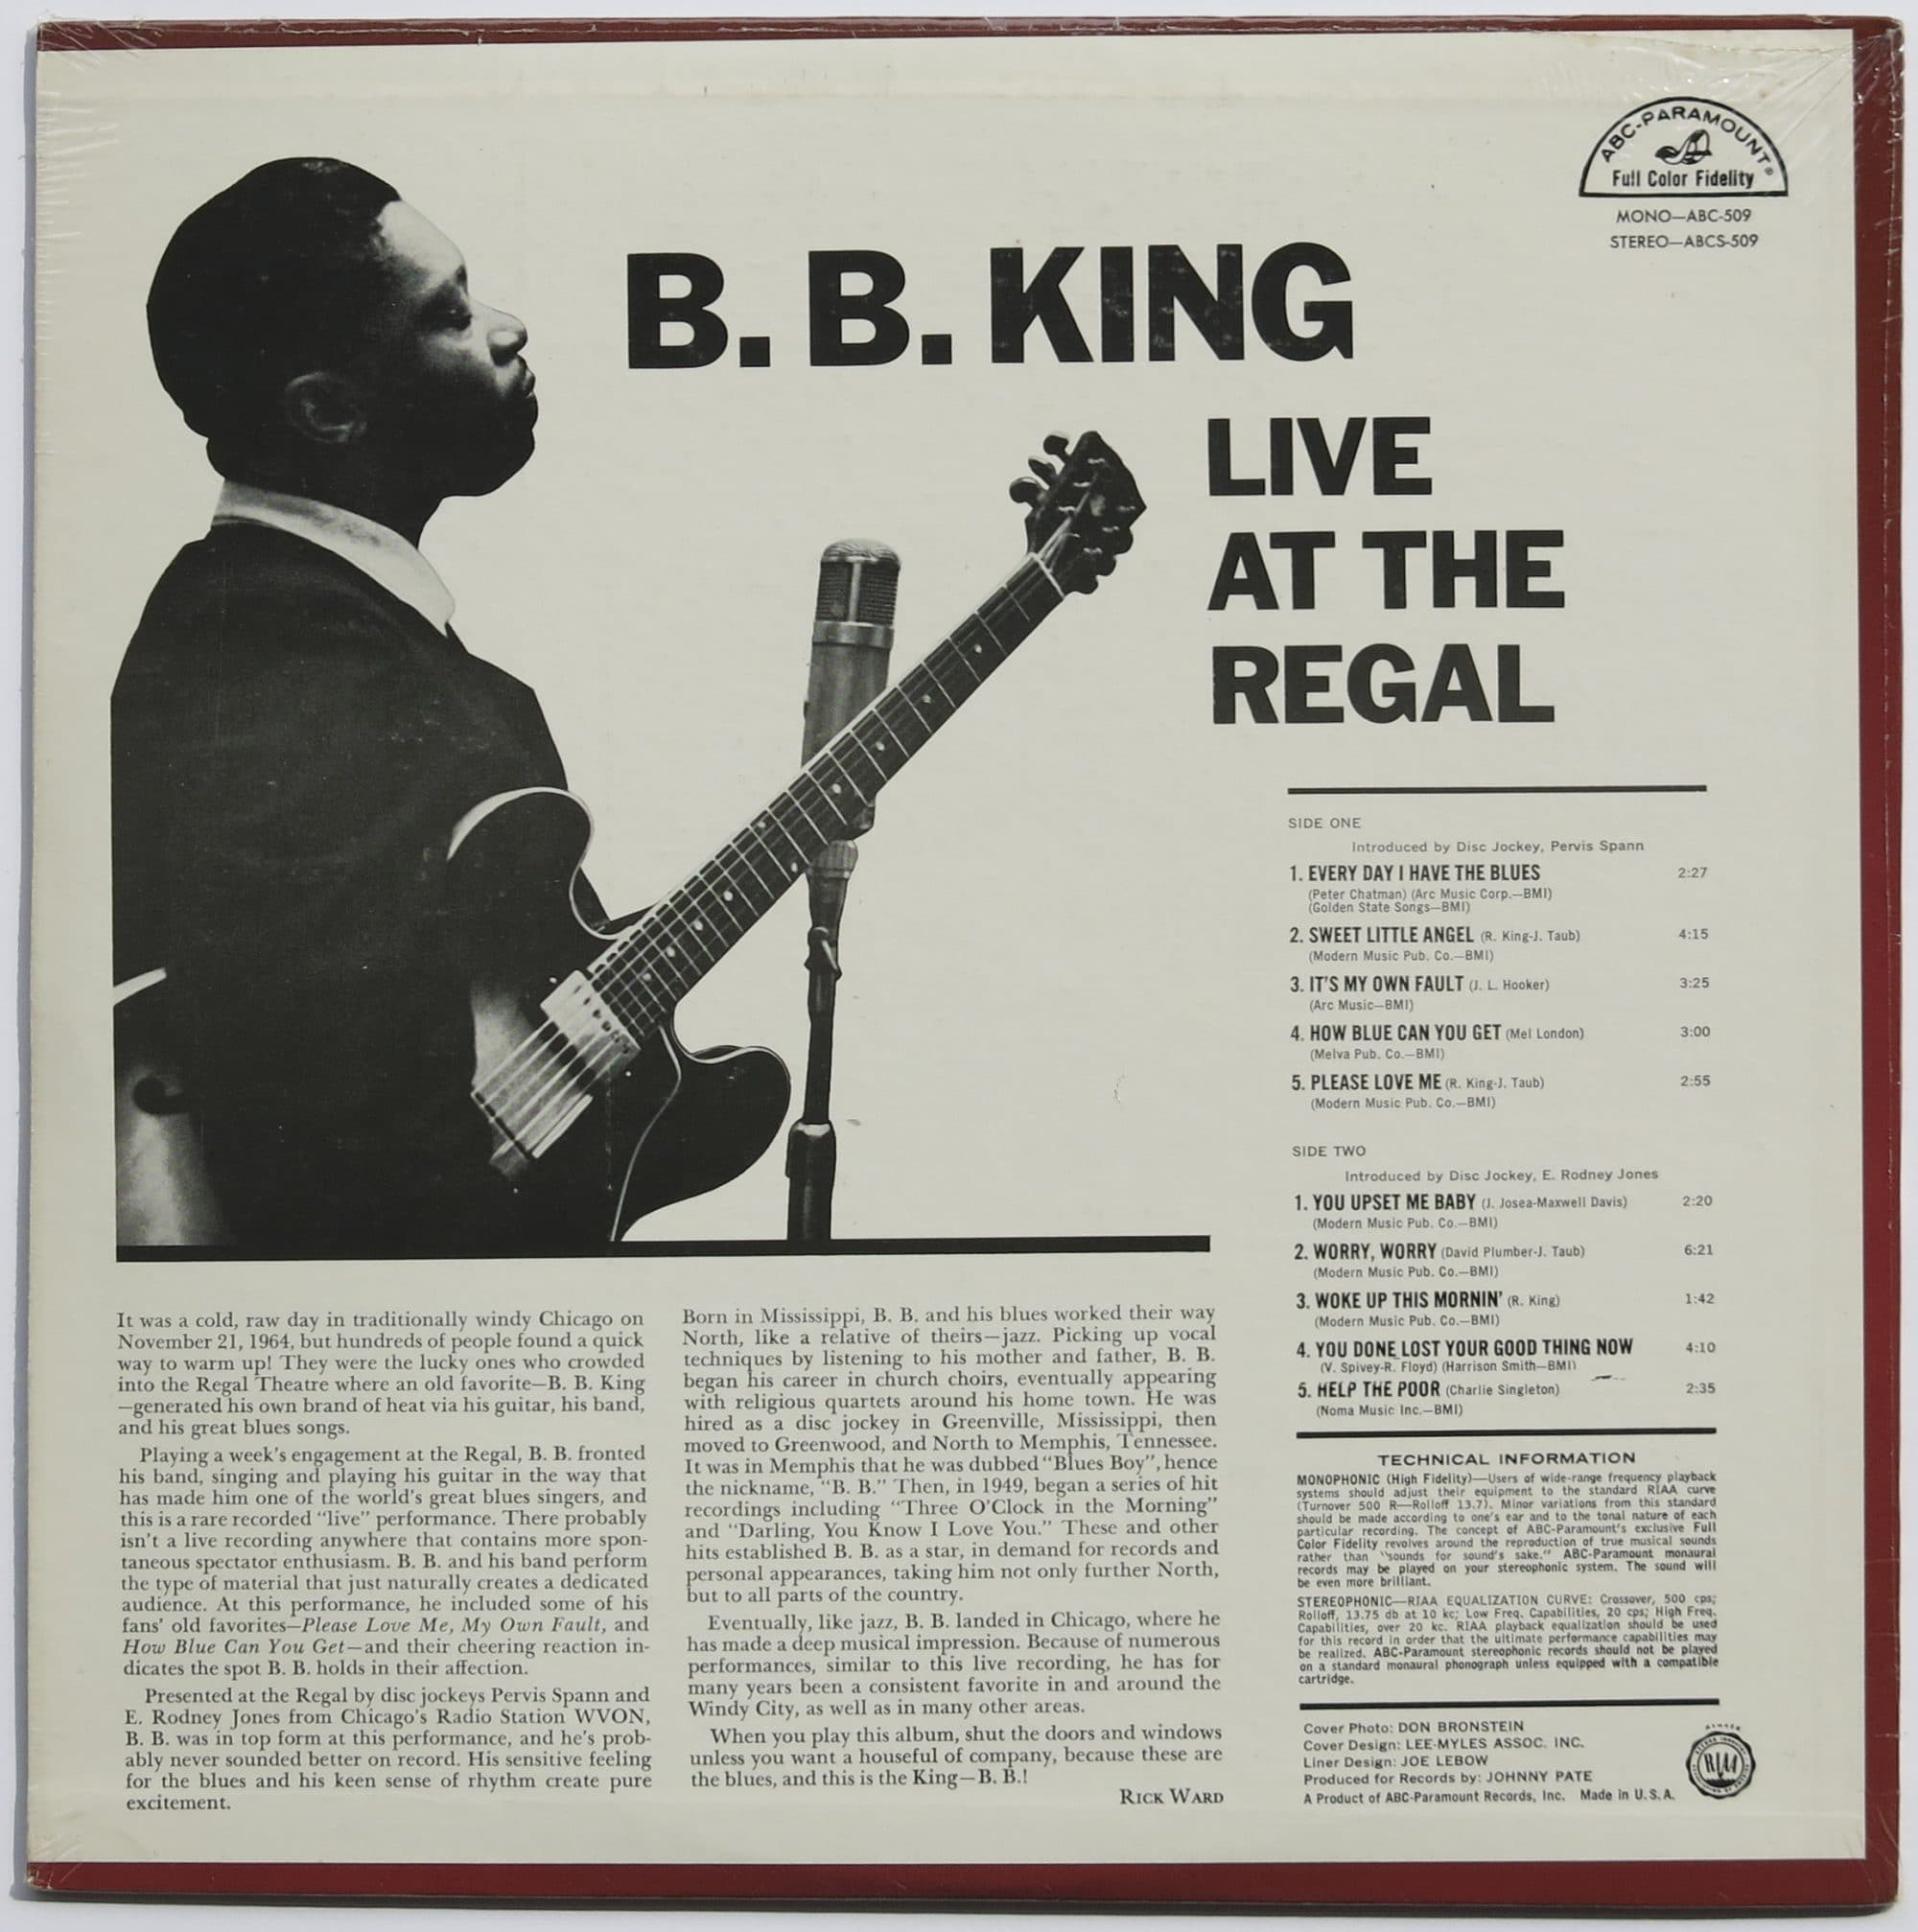 Lp Regal B B King Sealed 1st Pressing Live At The Regal Lp